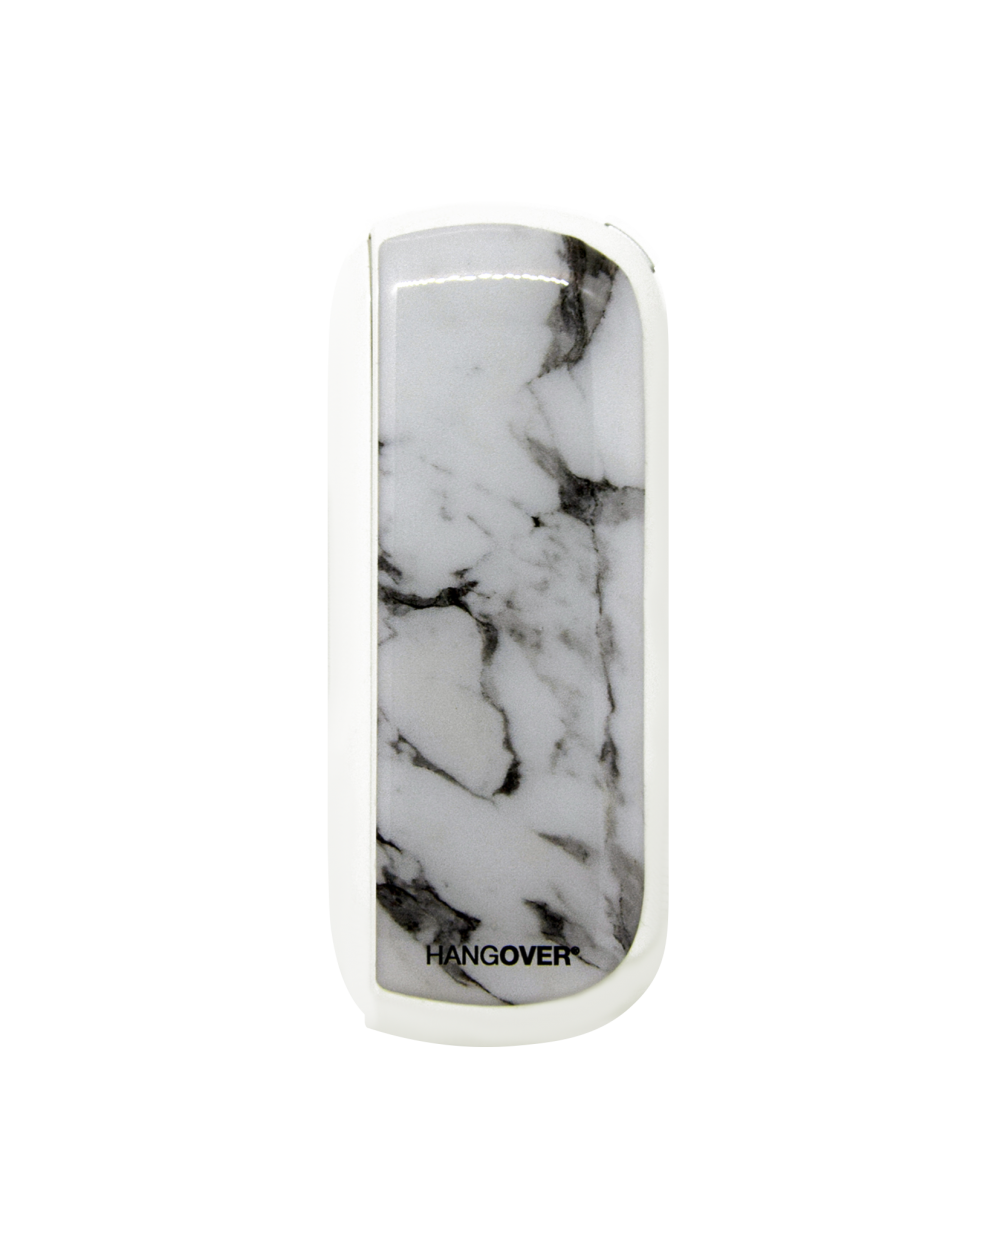 Marble White - SmartSkin in Resina Speciale for Iqos 3